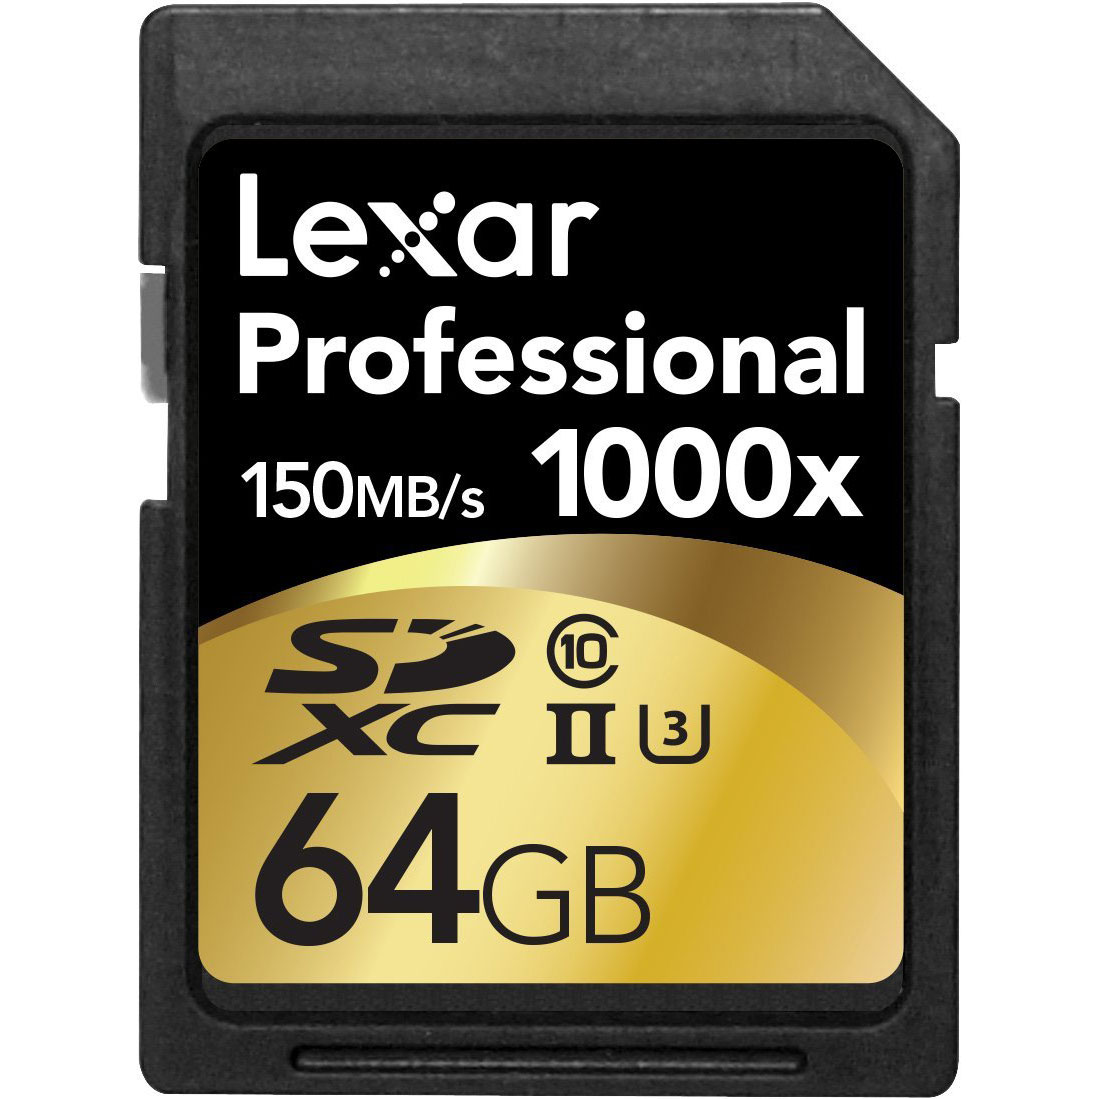 Lexar 1000x 64GB SDXC UHS-II/U3 Card (Up to 150MB/s read) w/Image Rescue 5 Software